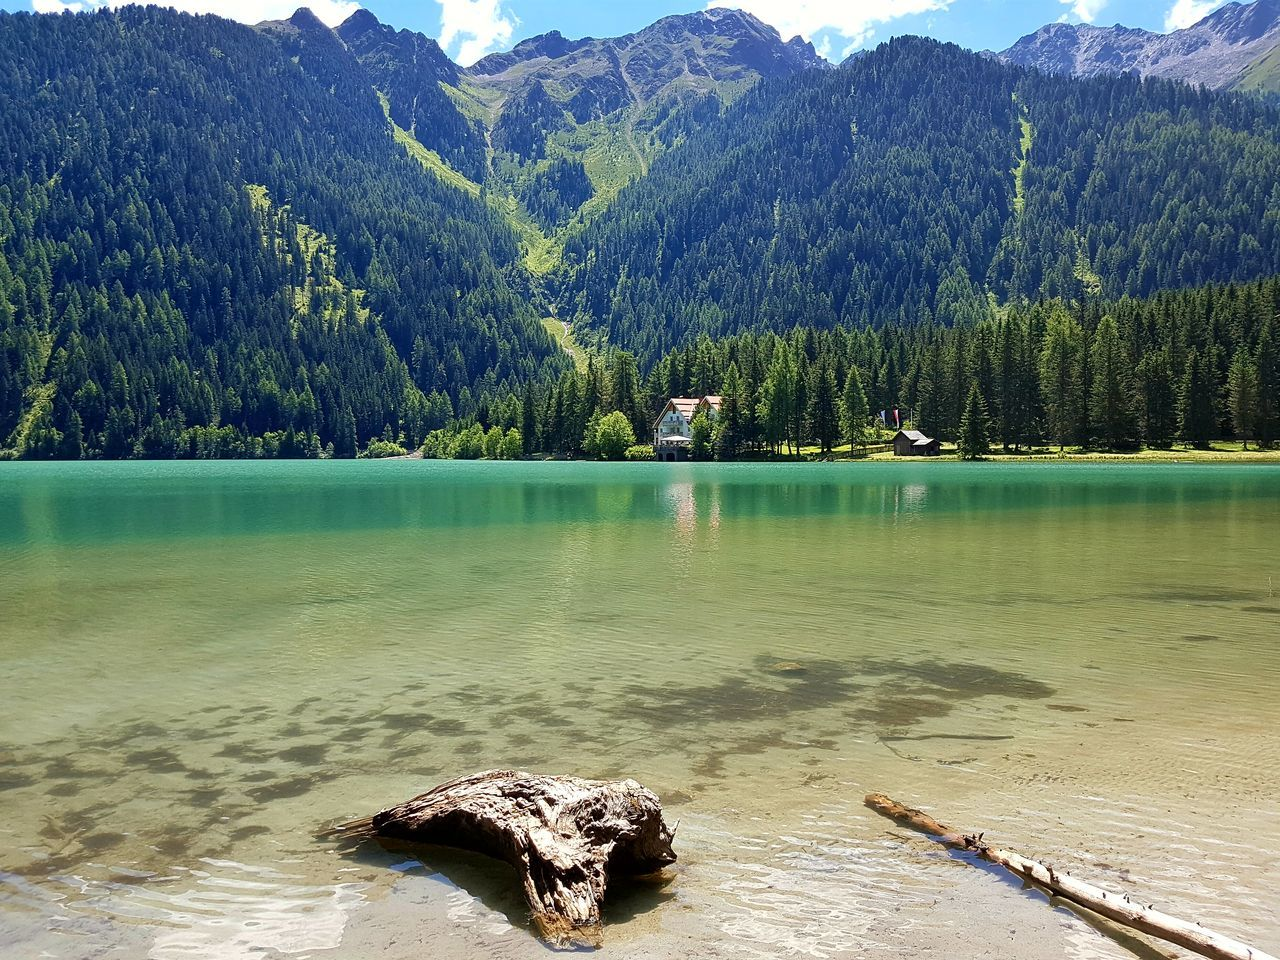 Trentino Alto Adige Alto Adige Anterselva Lago Di Anterselva Antholz Lake Lakeshore Mountains Alps Italian Alps Green Color Walking Around Taking Photos Traveling EyeEm Best Shots EyeEm Nature Lover Nature_collection Beauty In Nature Outdoors Showcase July Getting Inspired